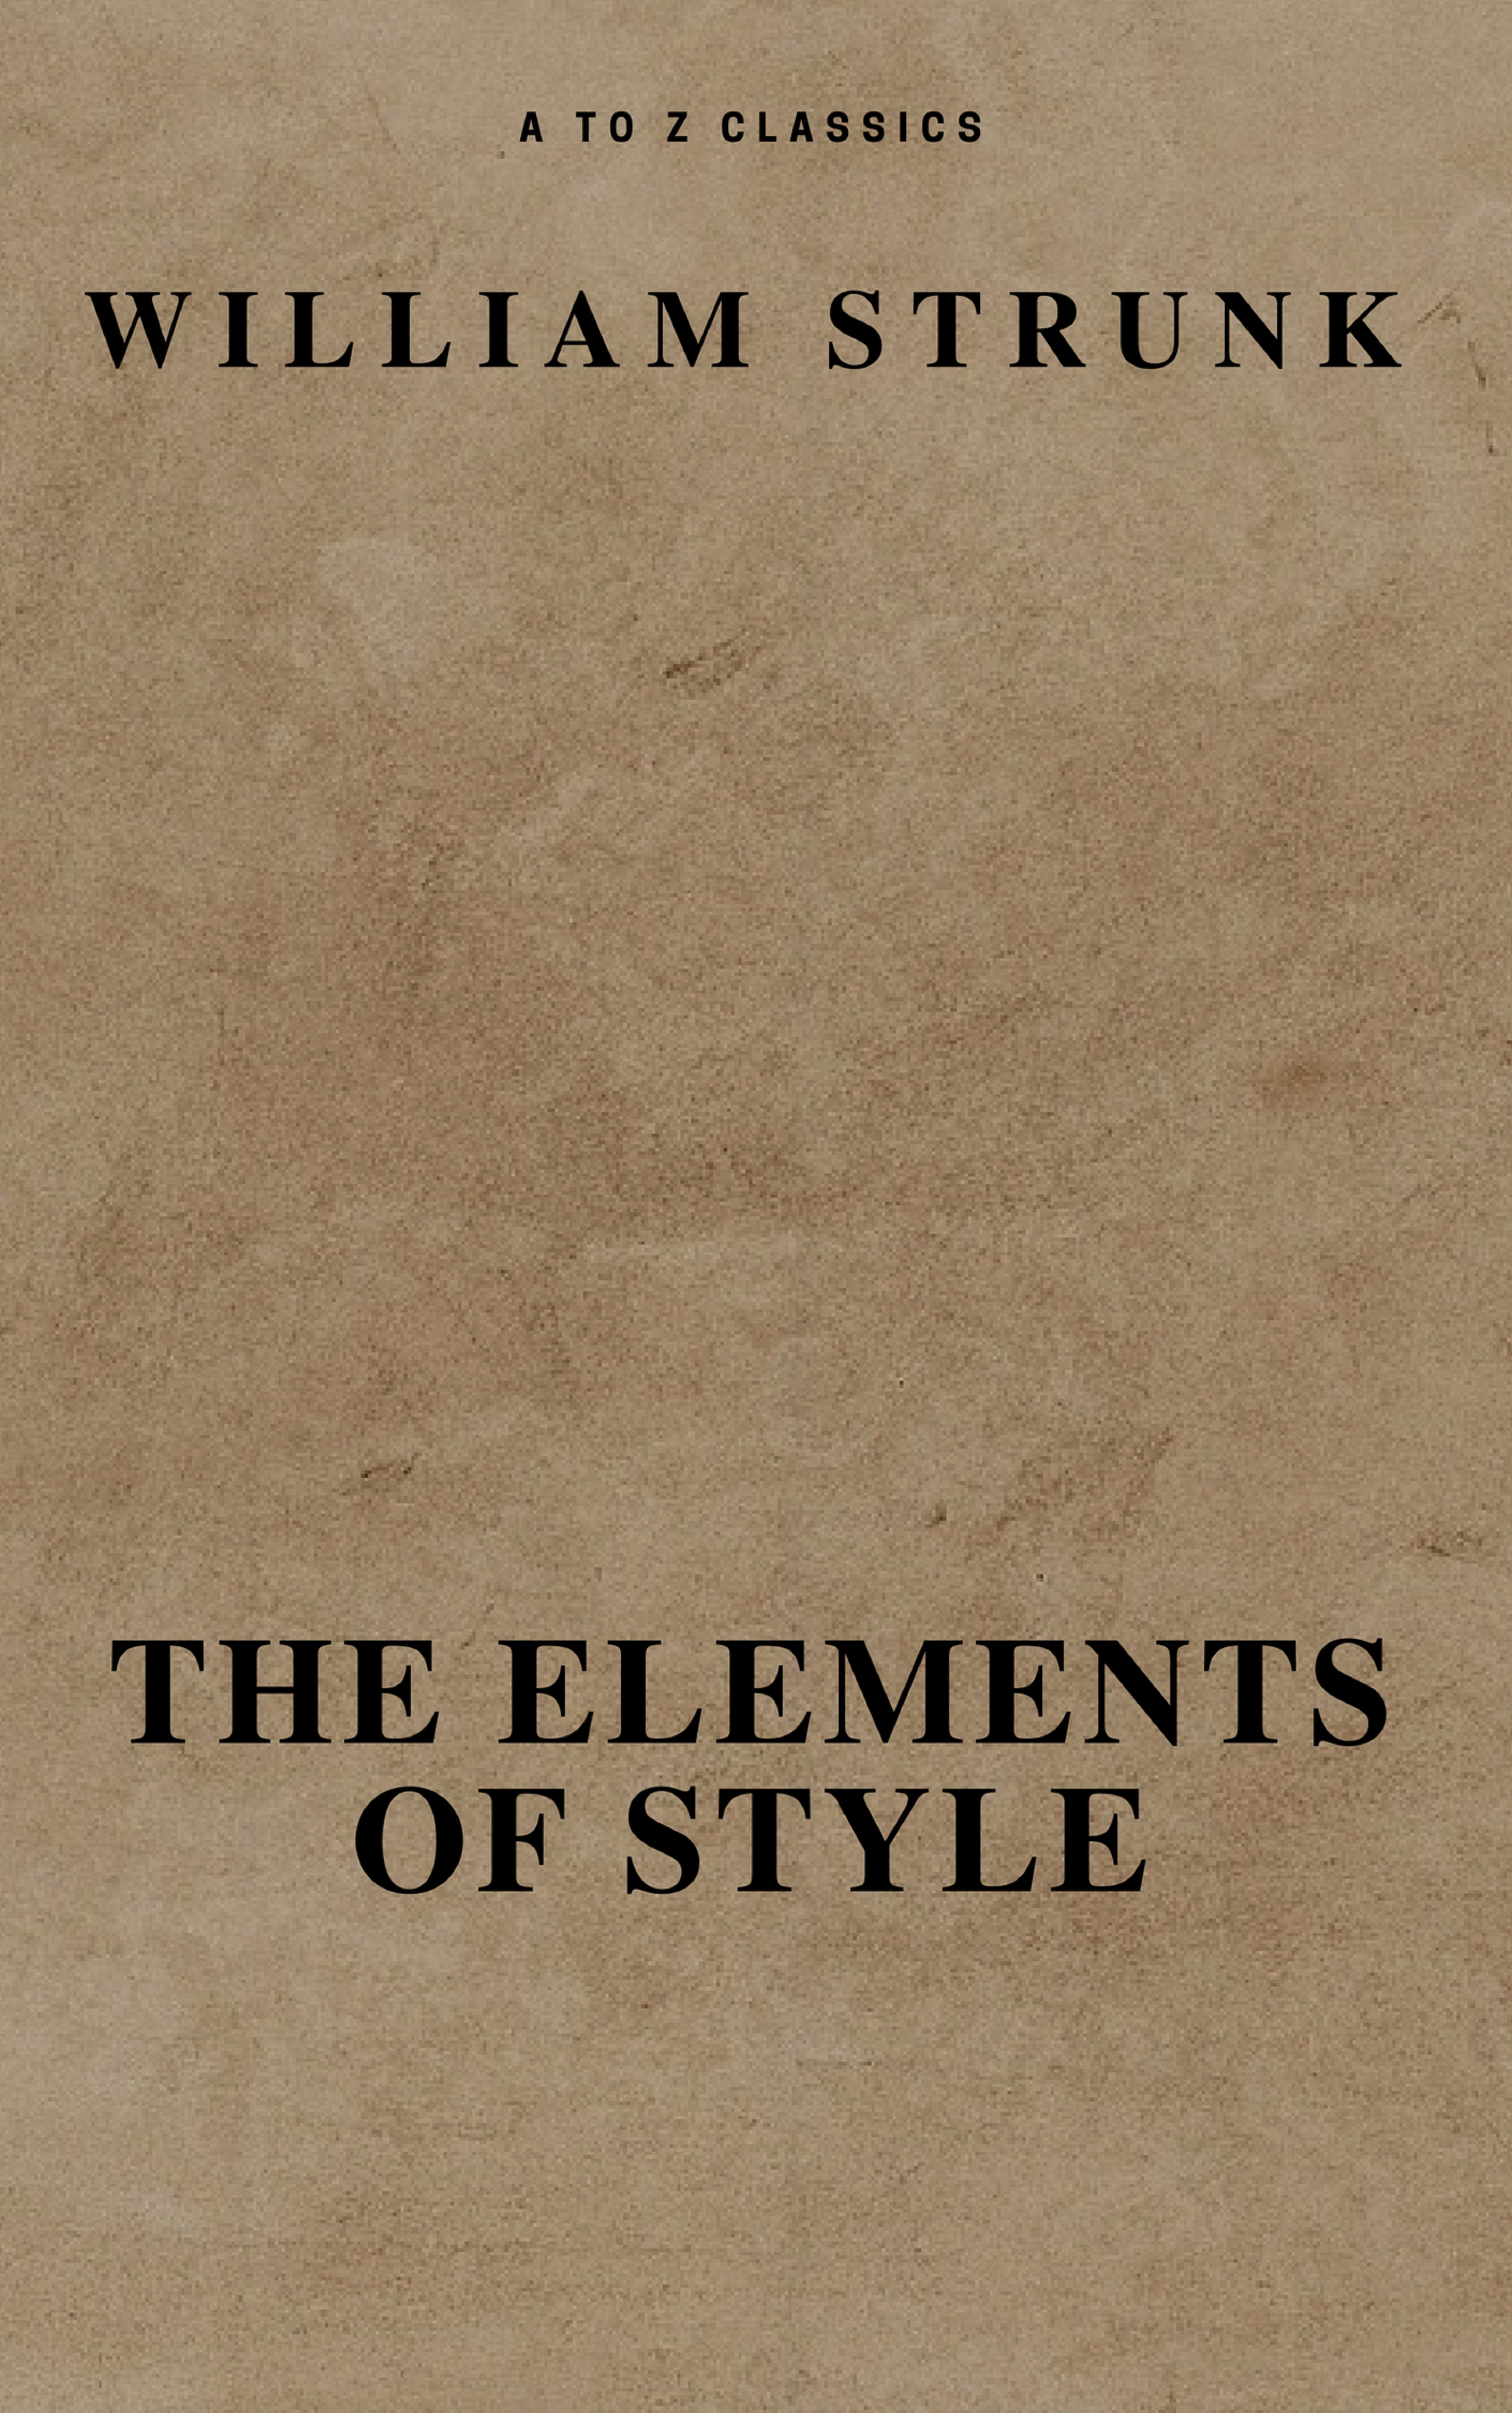 William Strunk The Elements of Style ( Fourth Edition ) ( A to Z Classics)